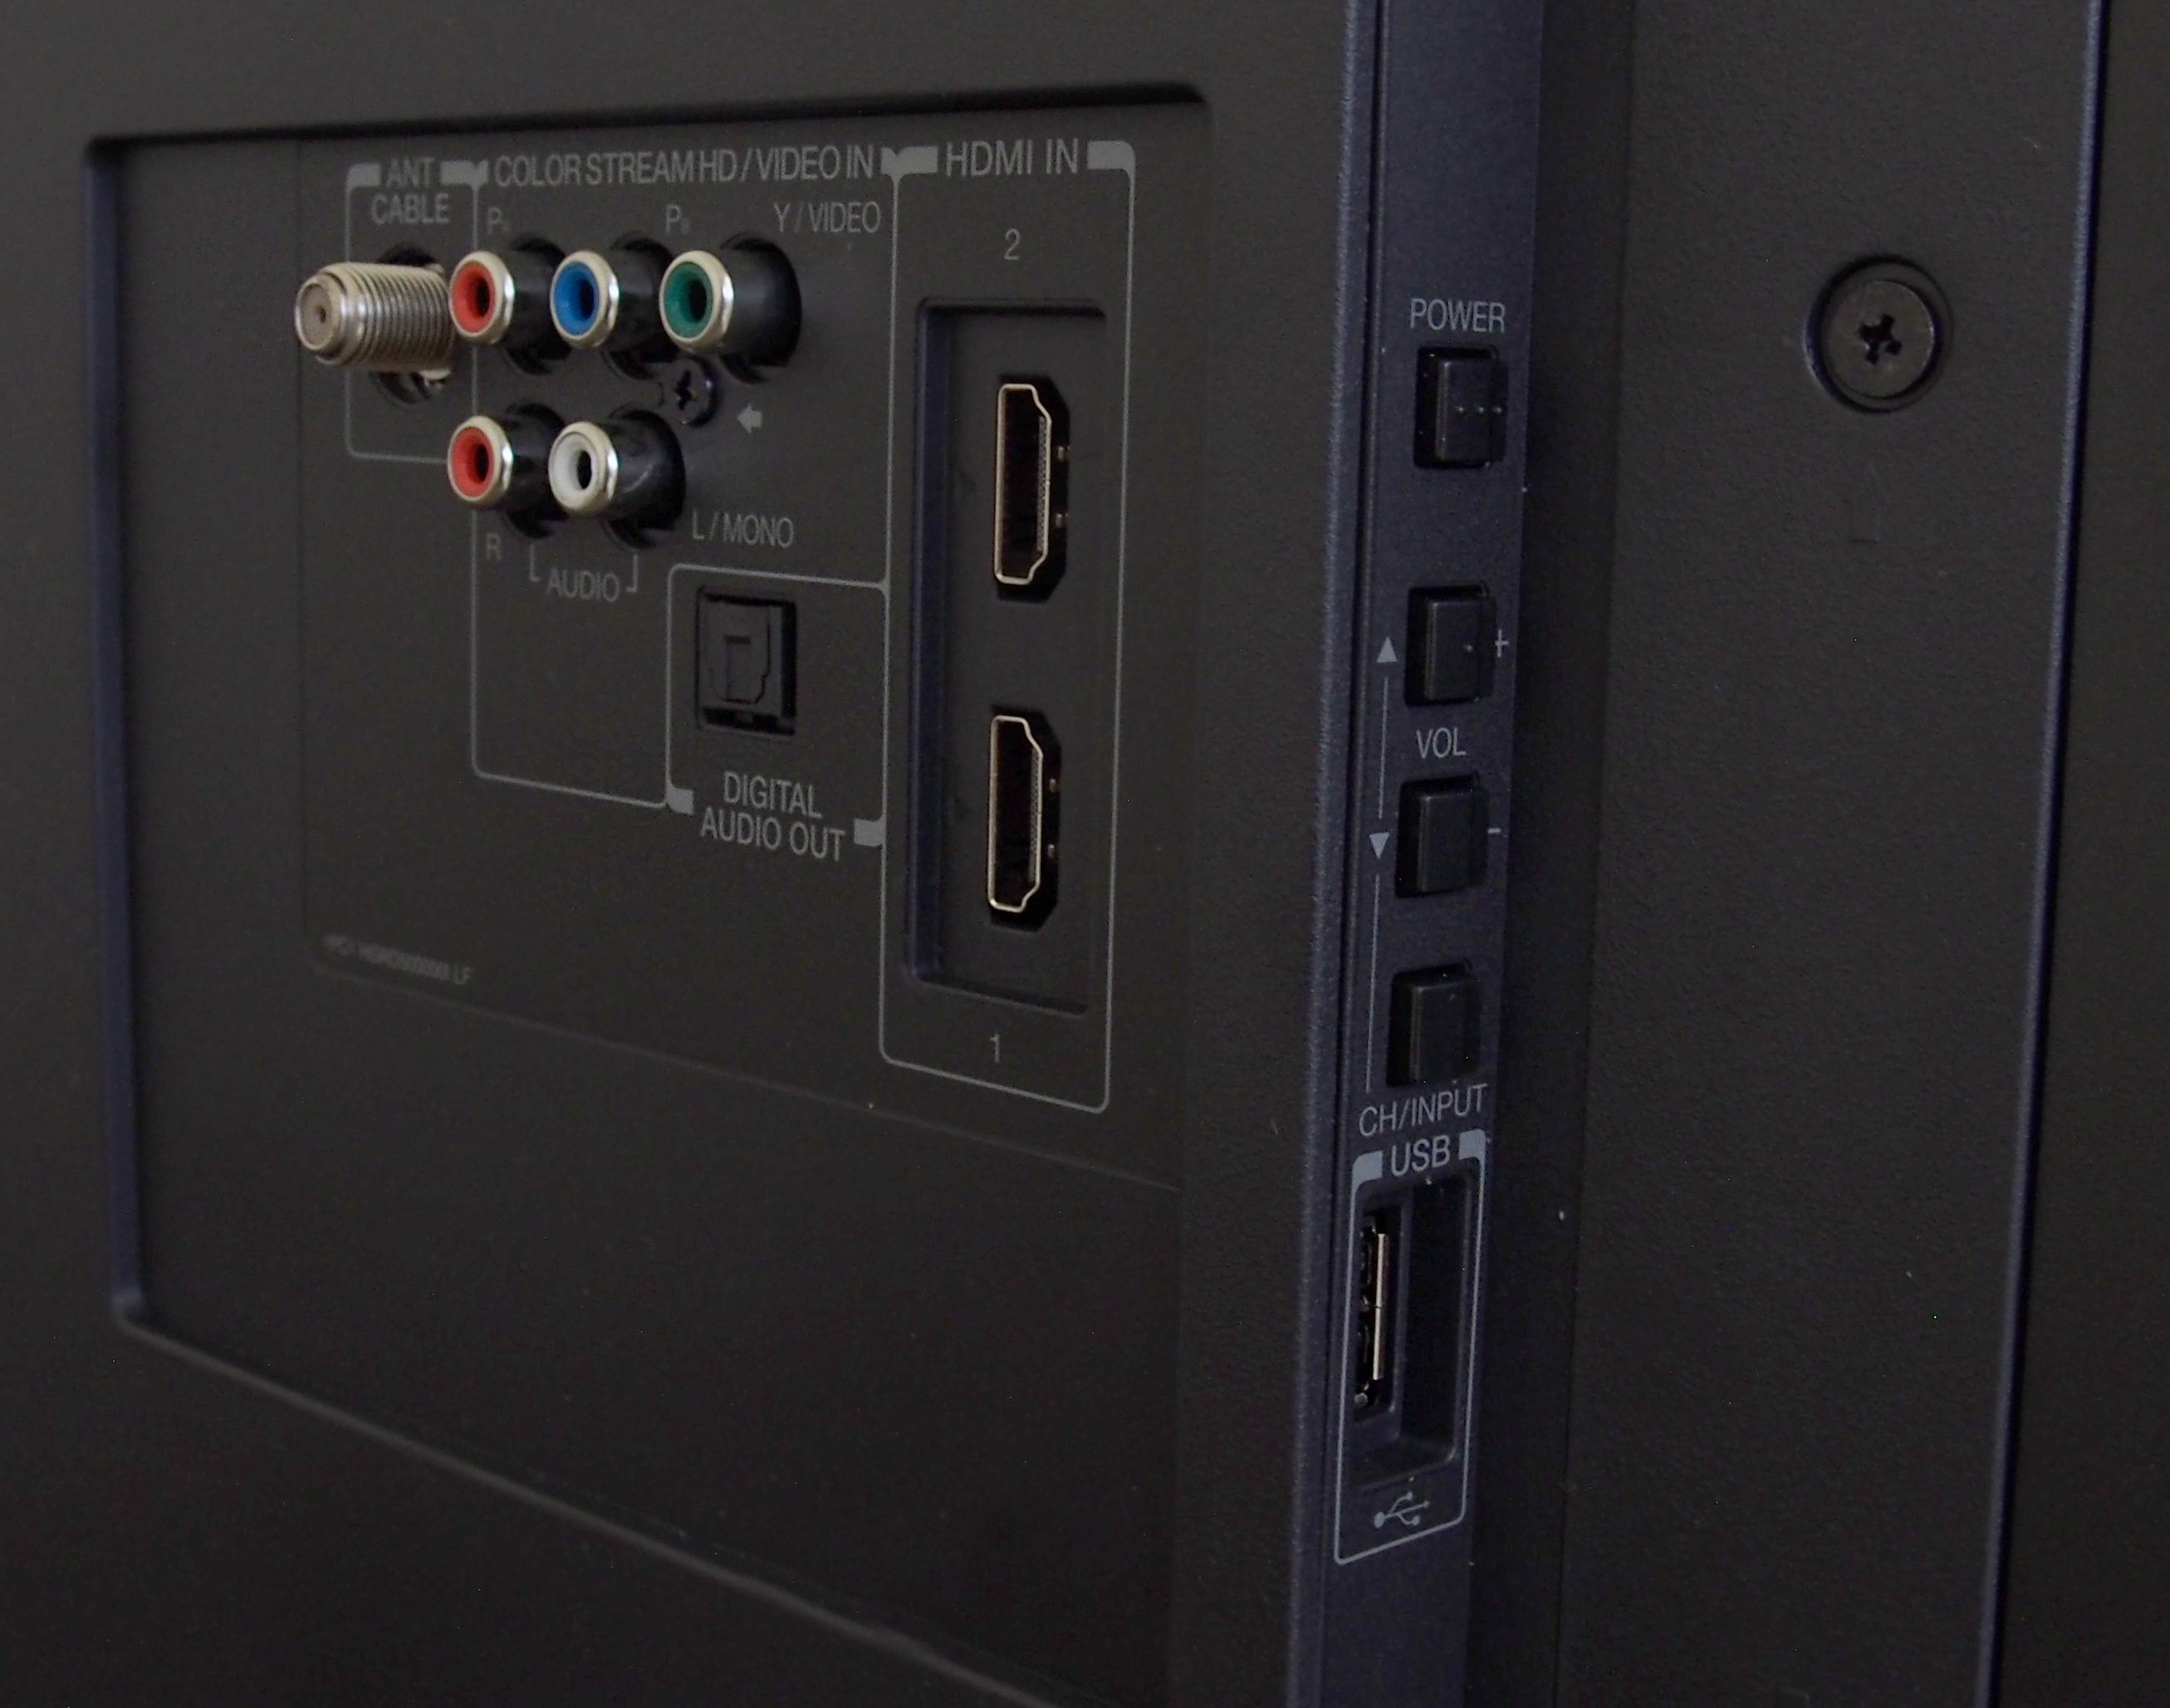 The 50L1400U has manual controls and a USB port on the side.